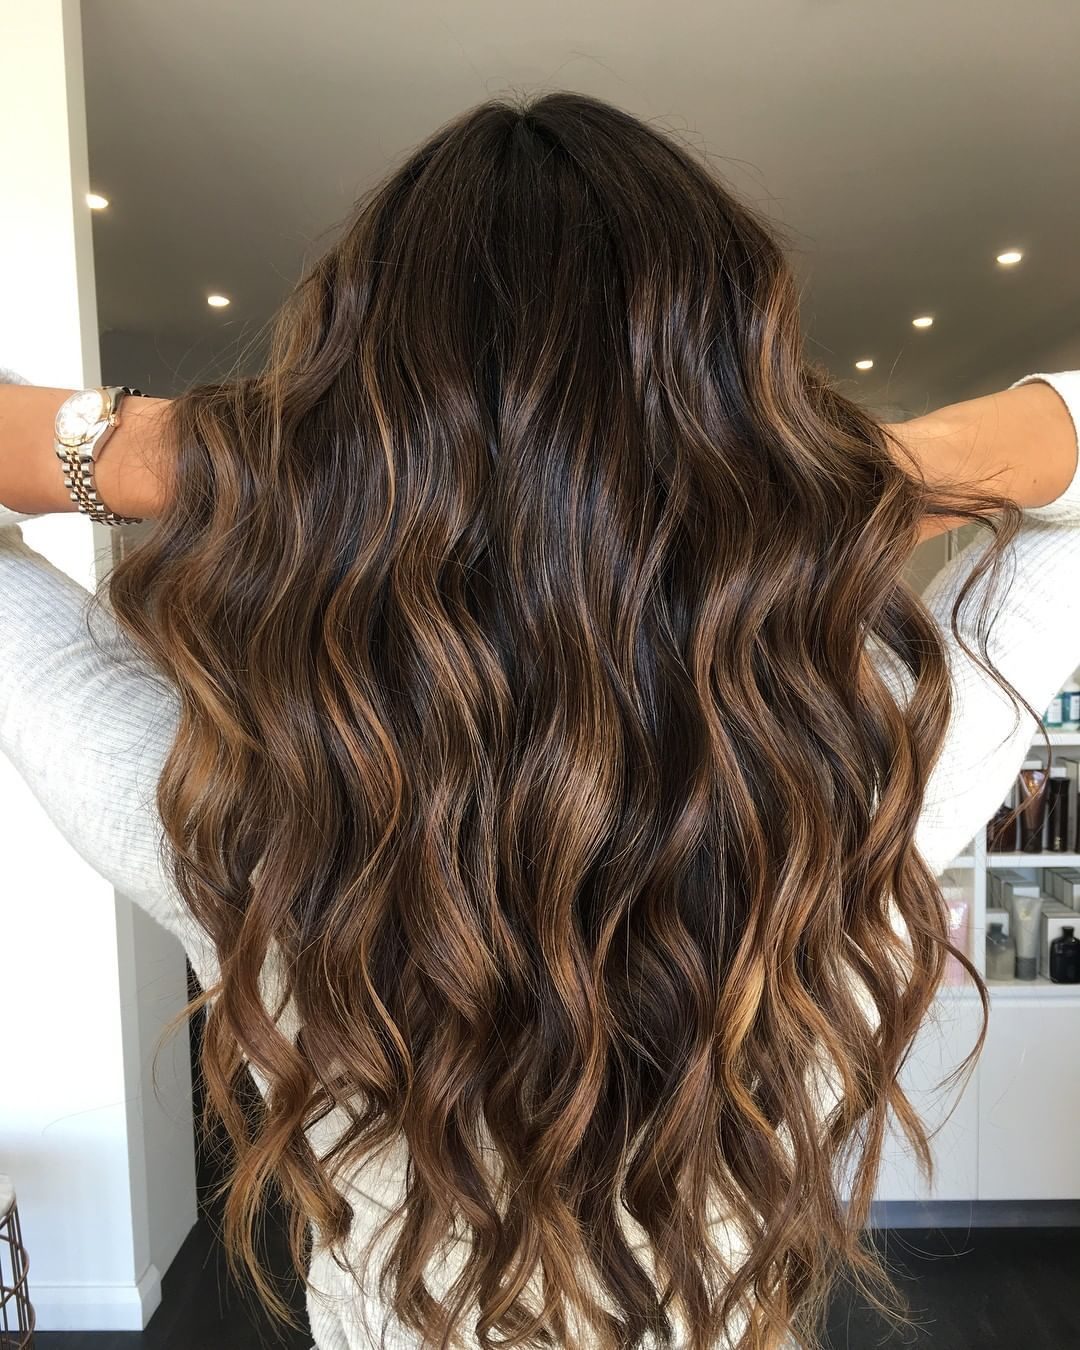 The 50 Best Hair Colors For Summer That Are On Trend In 2021 Hair Com By L Oreal Brown Hair Balayage Hair Styles Long Hair Styles